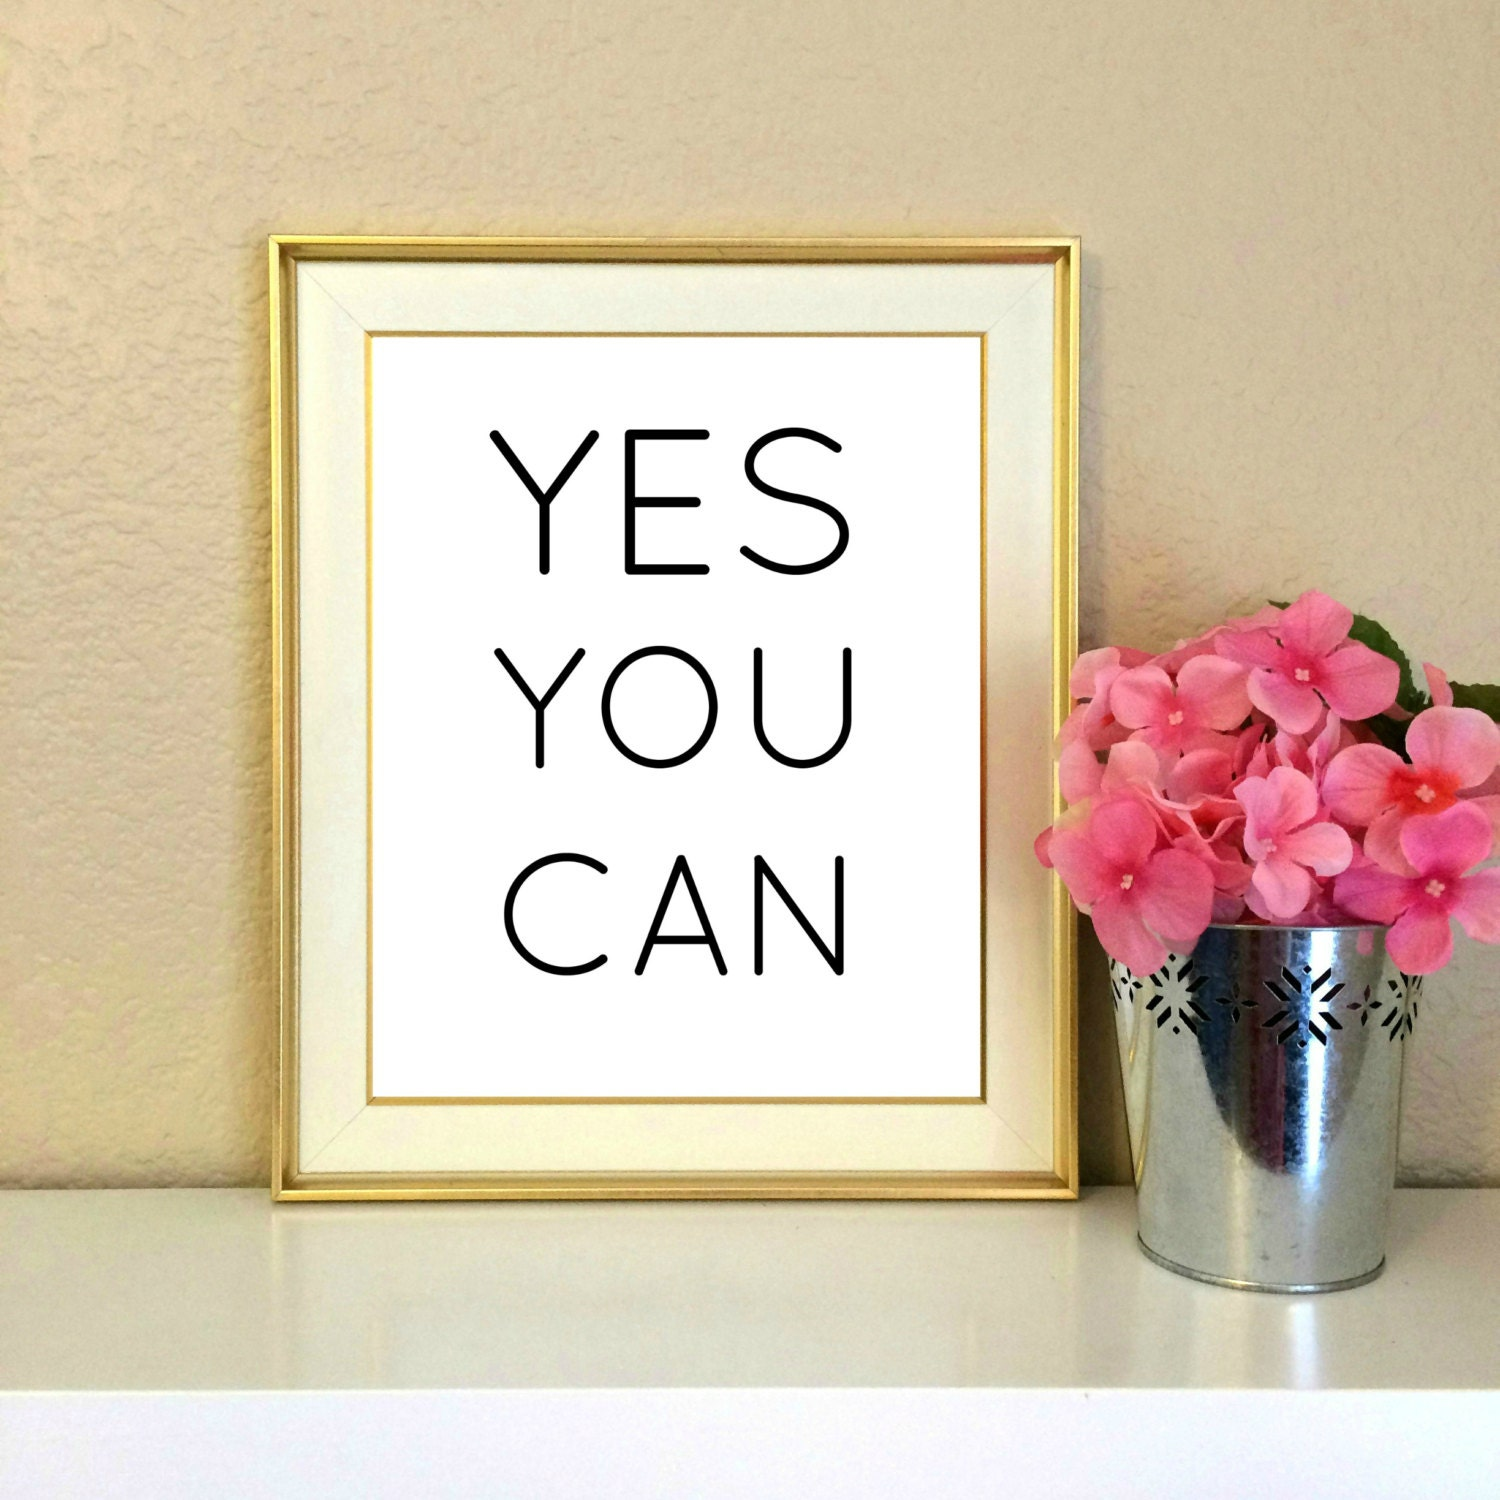 Yes you can office decor desk decor inspirational quote for Yes decoration